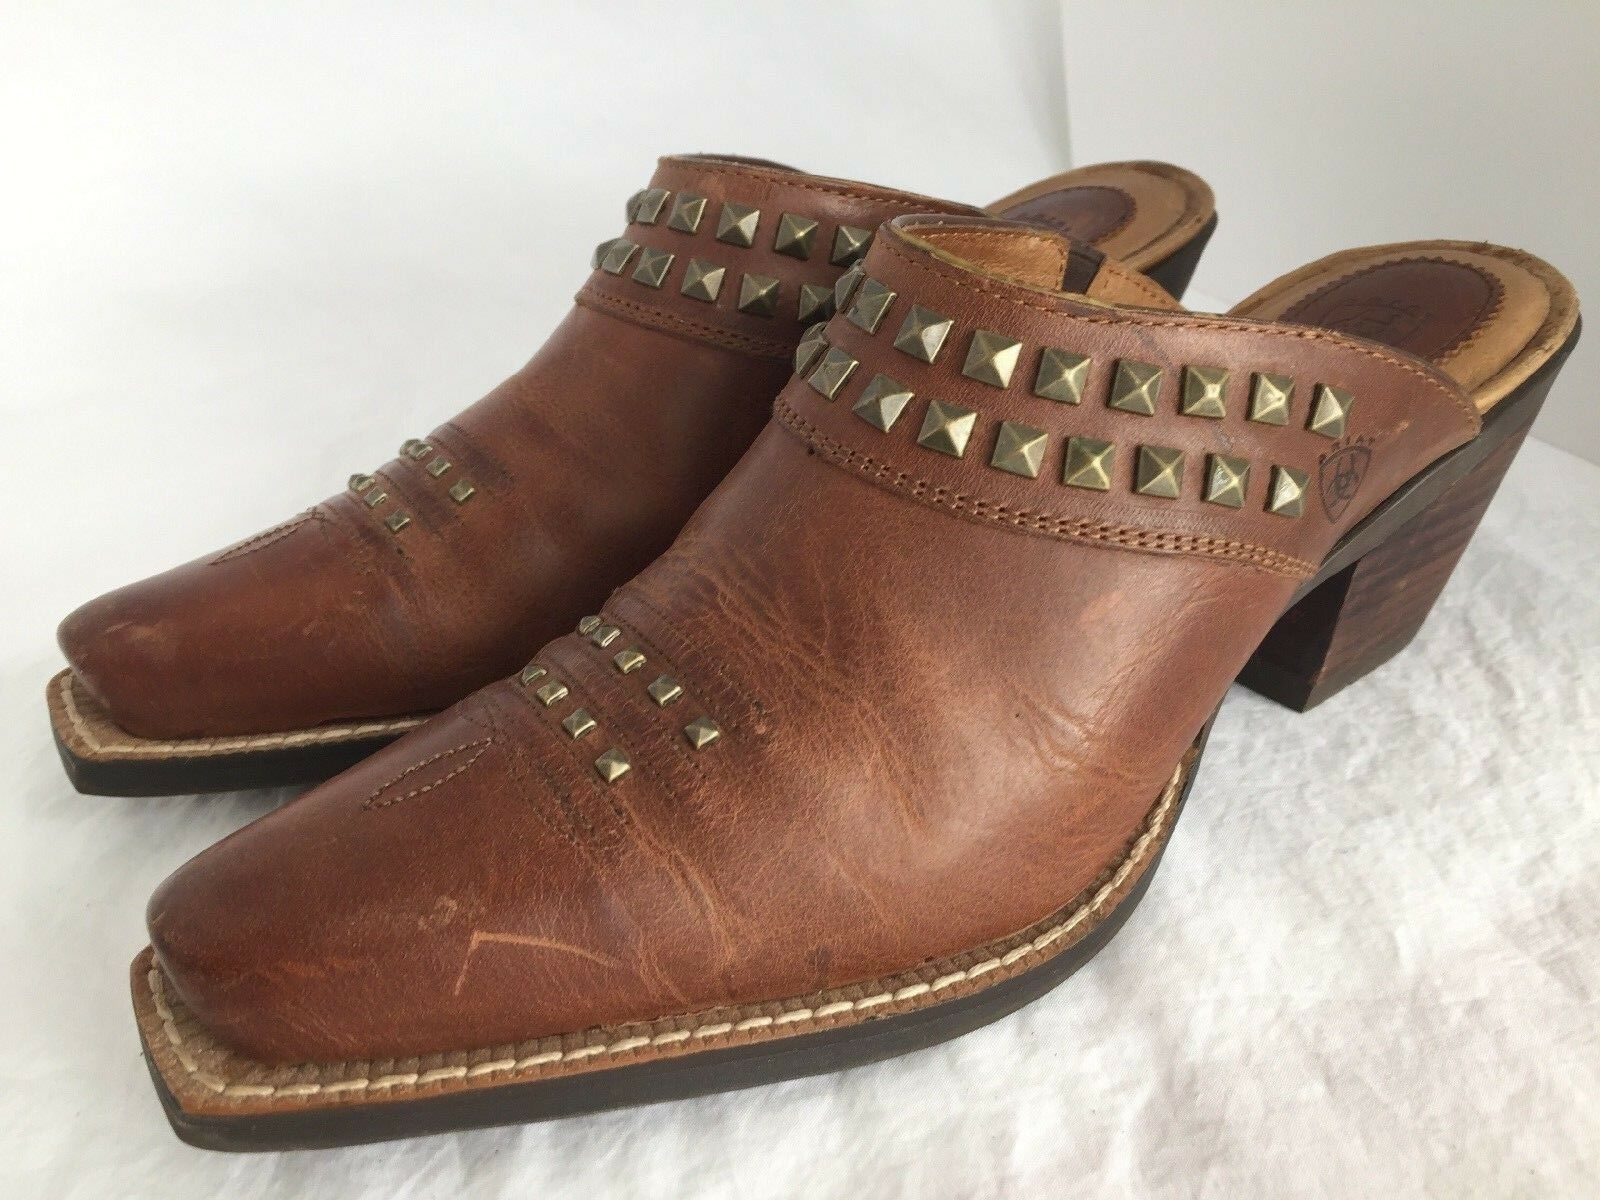 ARIAT Western Brown Leather Studded Mules Heels shoes Women's Size 7.5 B